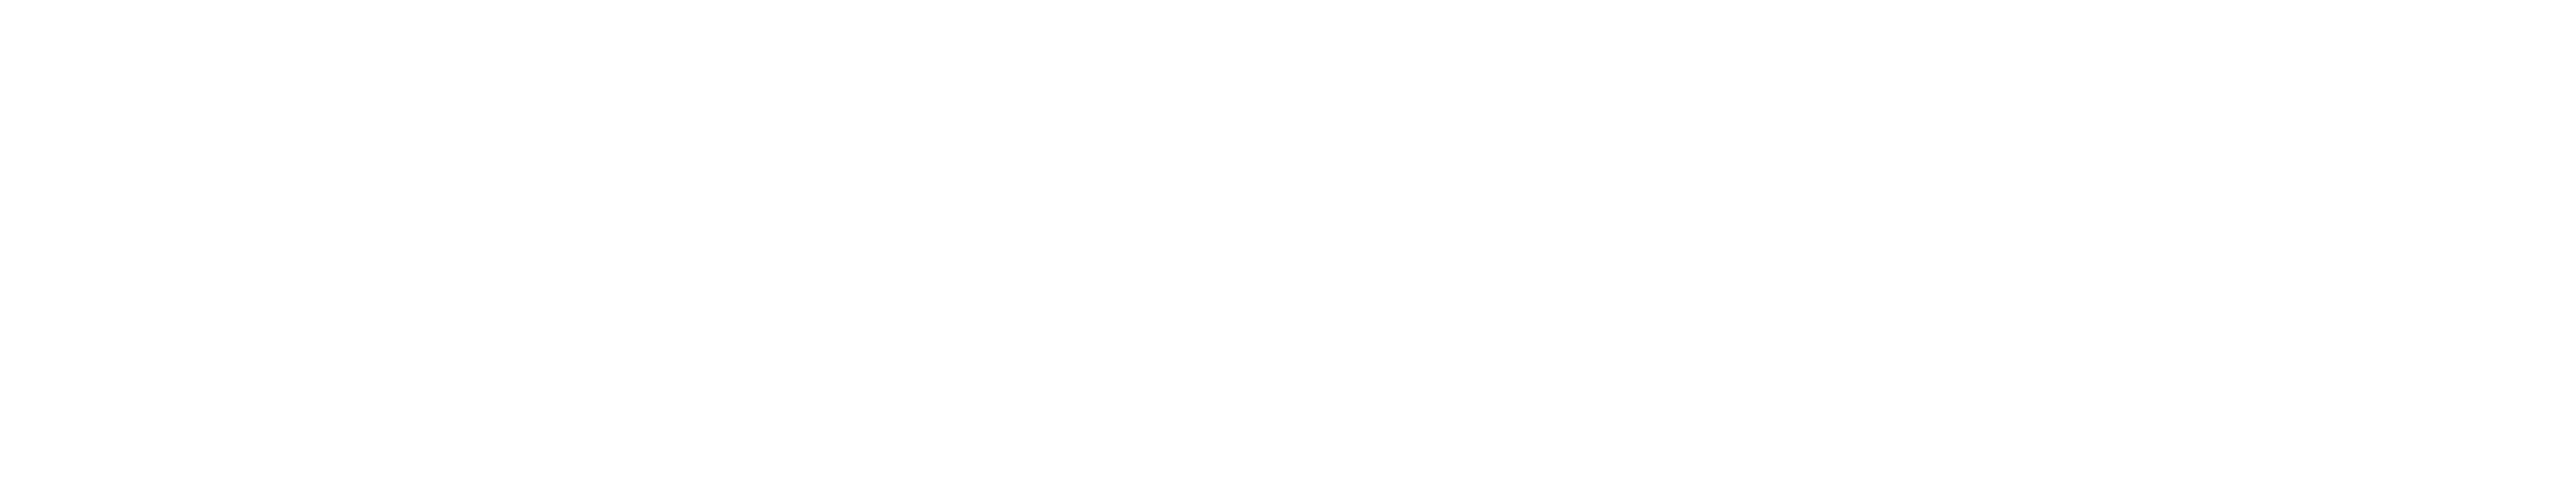 Chinese Medicine wellness company looking for a logo